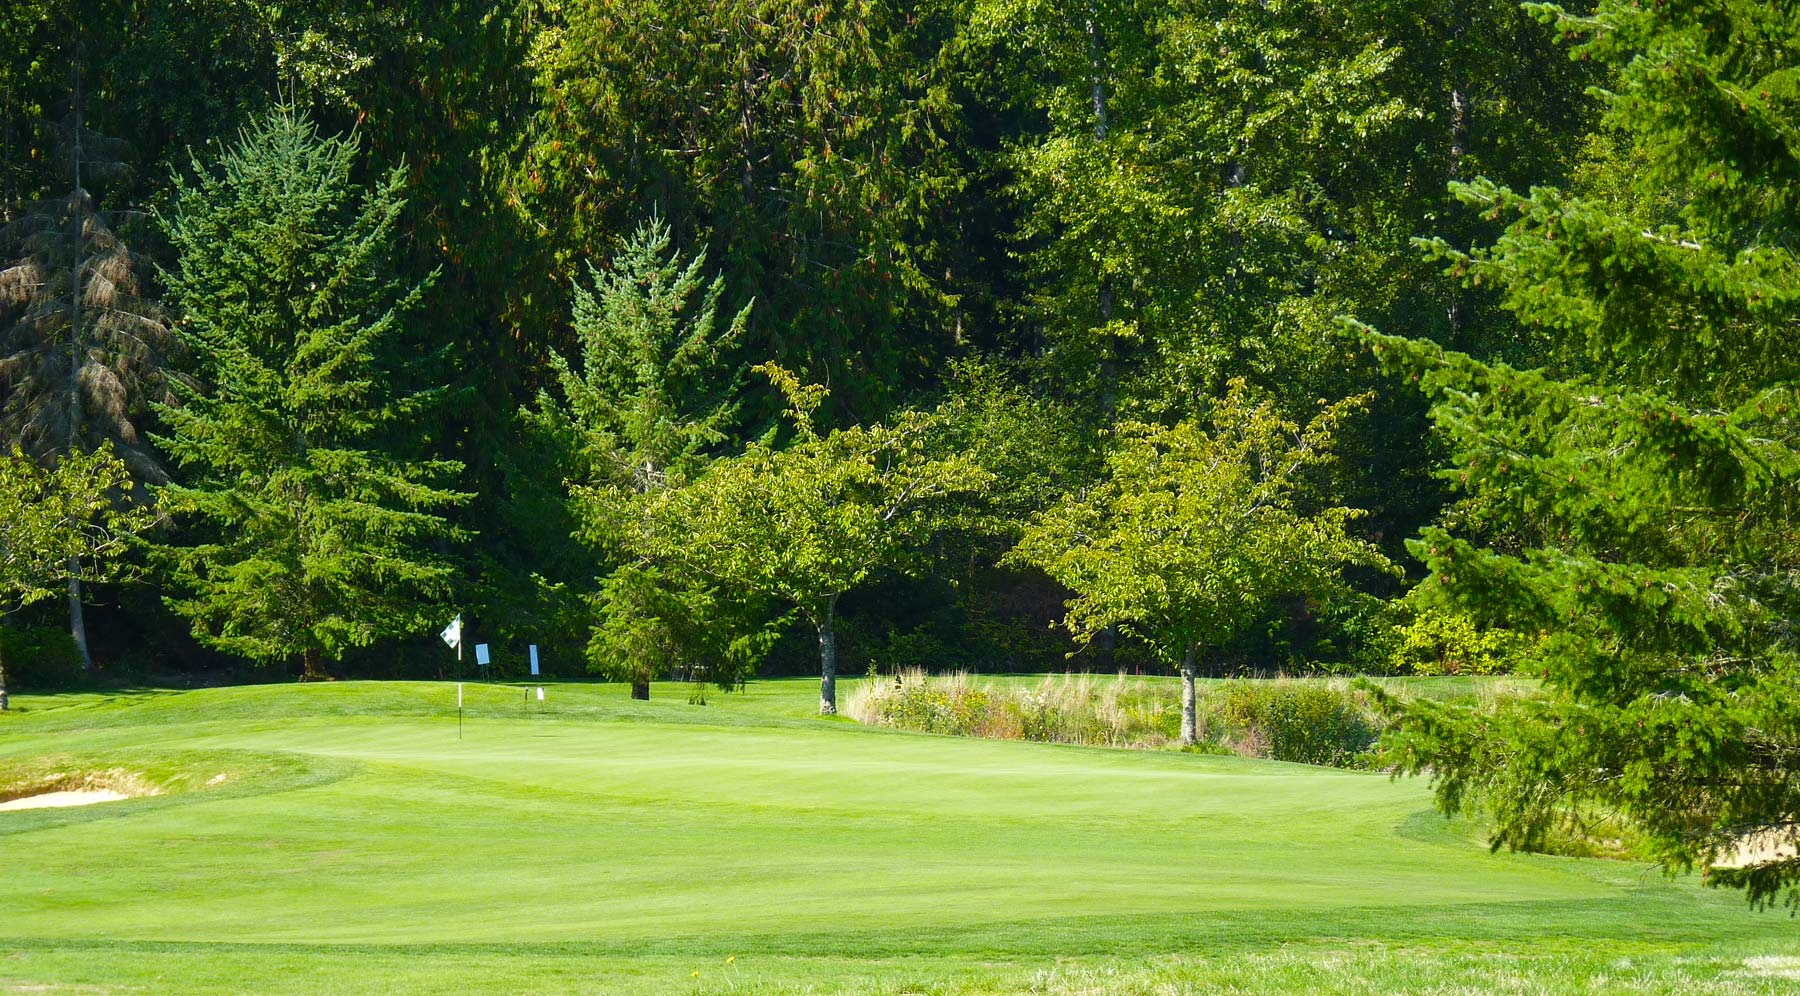 Golf instruction in Redmond with Tom Sovay